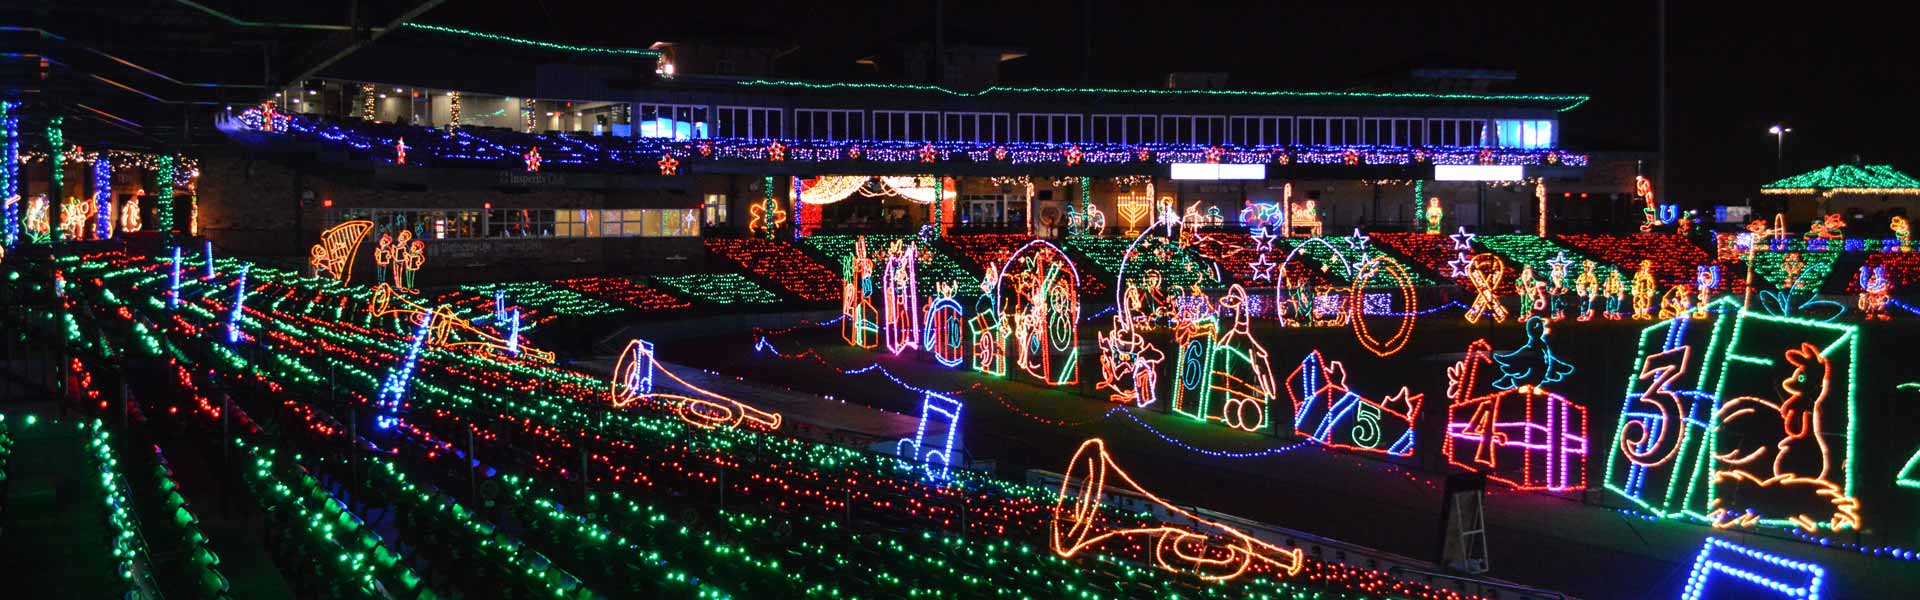 Image result for Holiday Lights constellation field